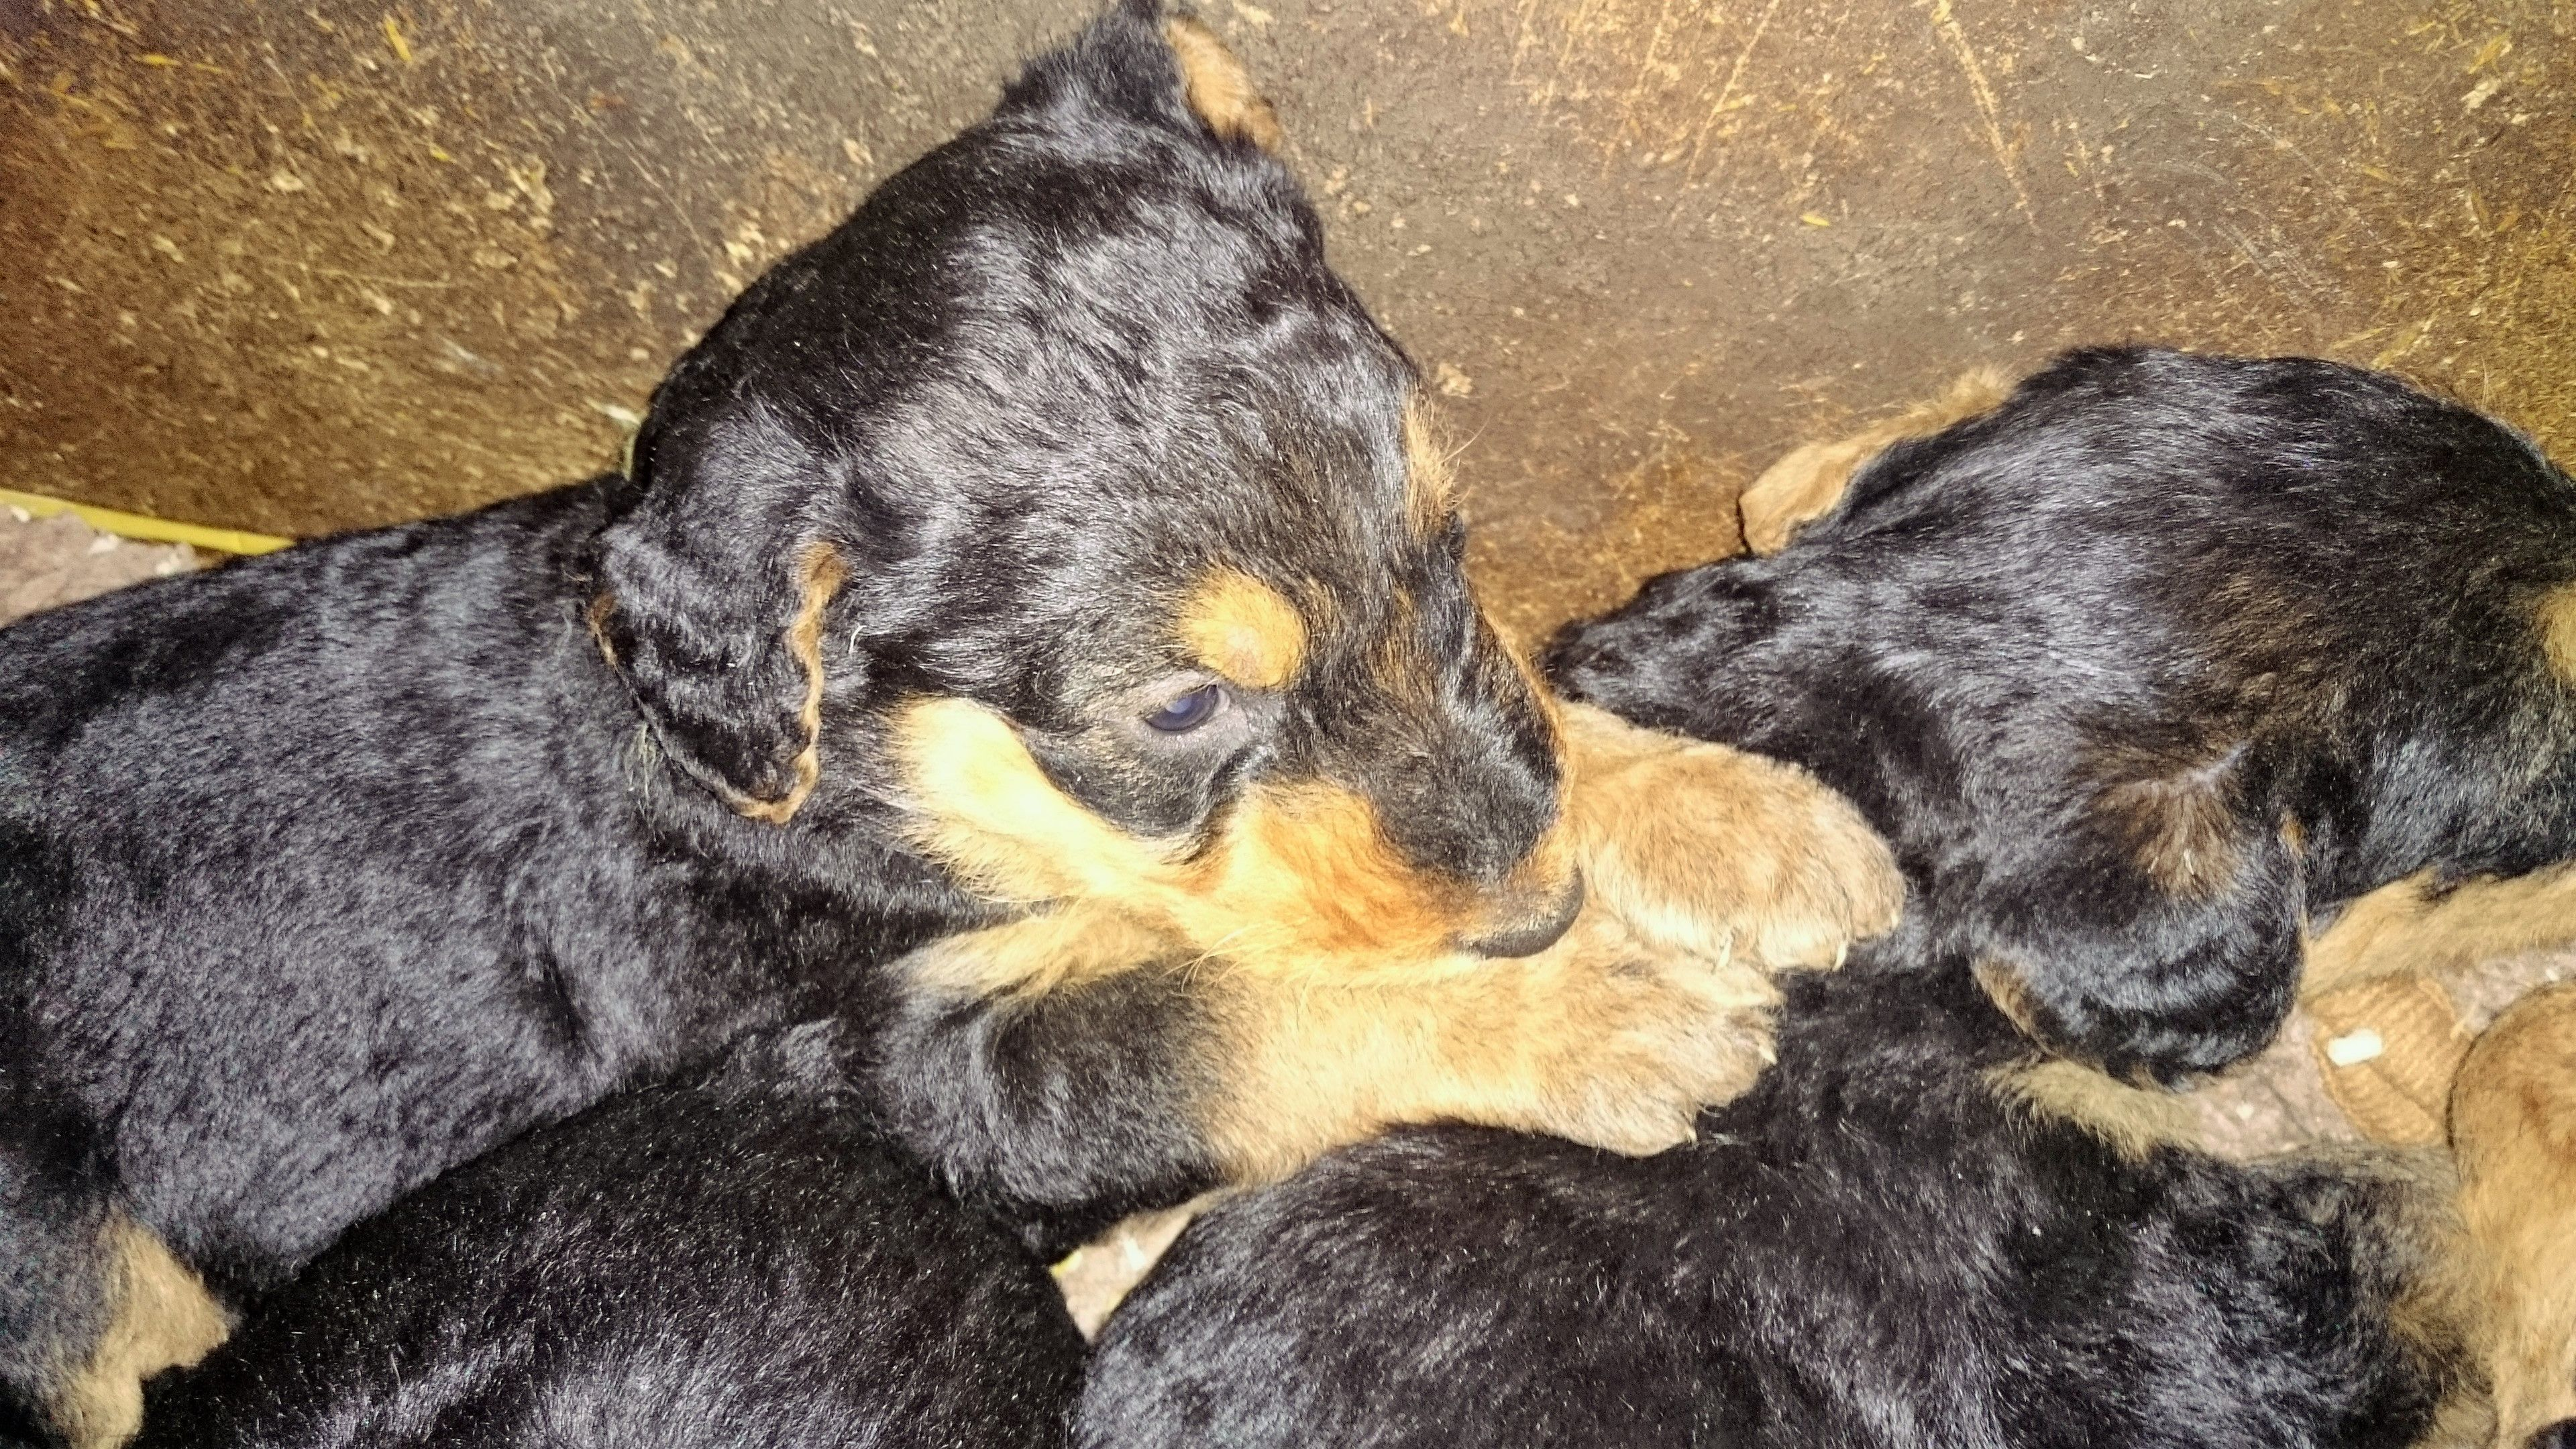 Royal Workers Airedale Terrier Rosi Hat Ihre Ersten Welpen Airedale Terrier Terrier Welpen